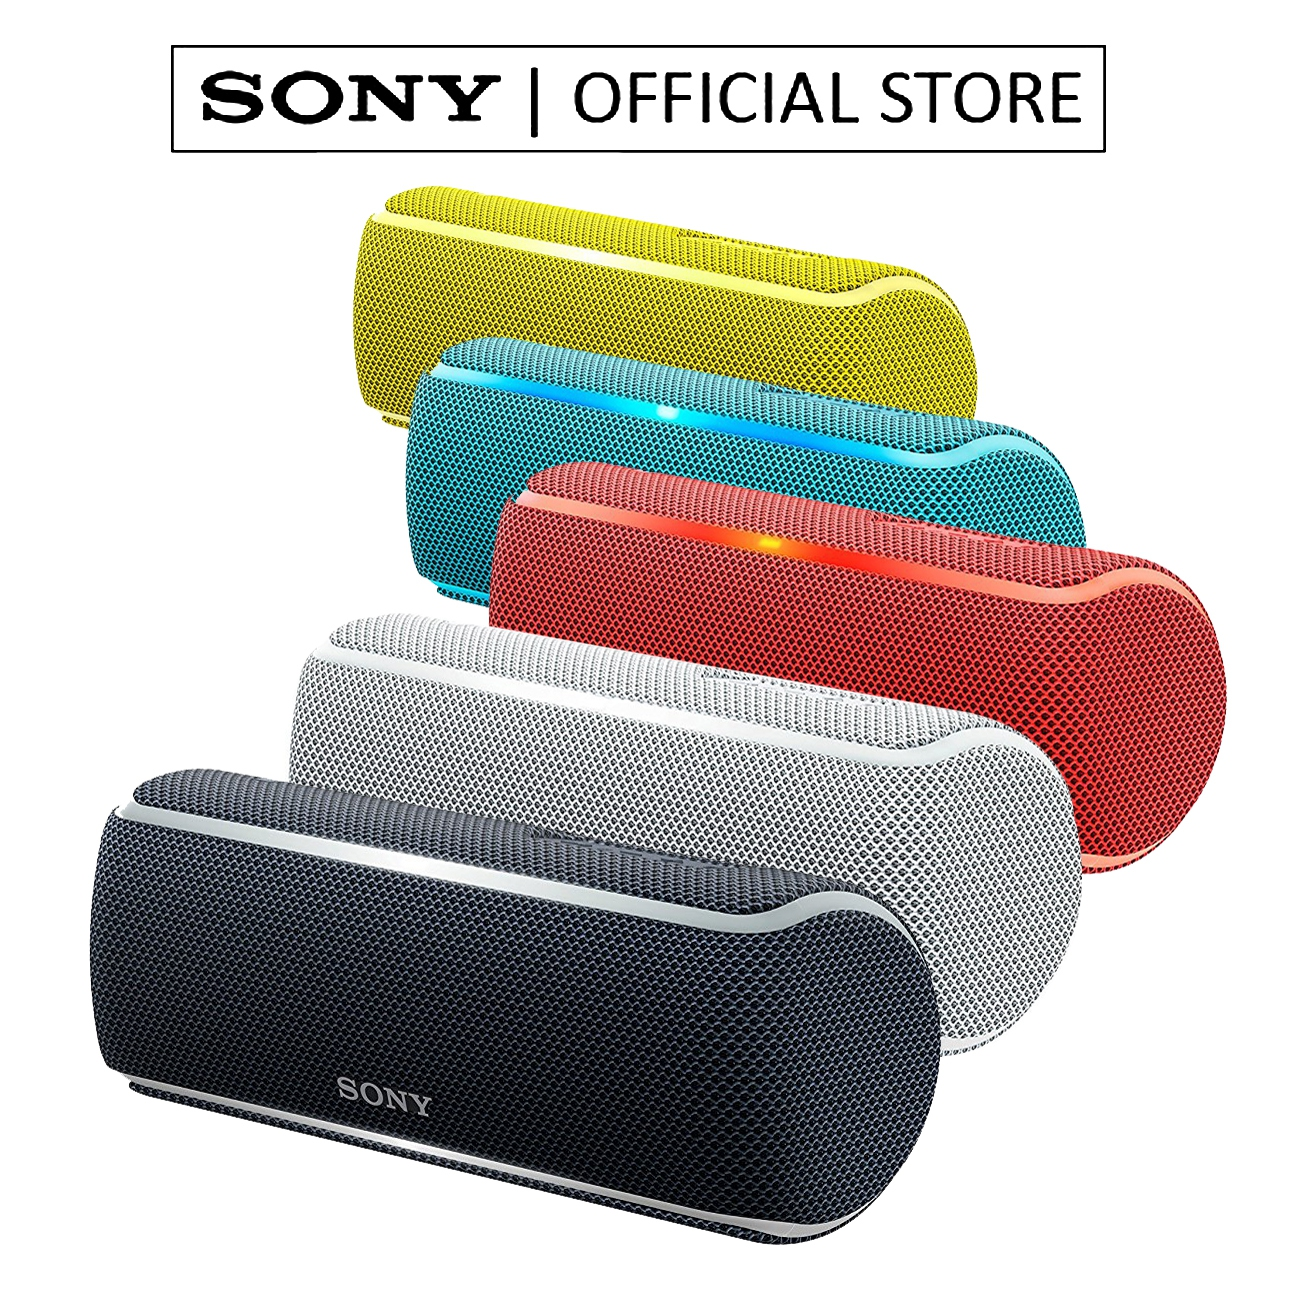 SONY SRS-XB21 PORTABLE WIRELESS WATERPROOF SPEAKER